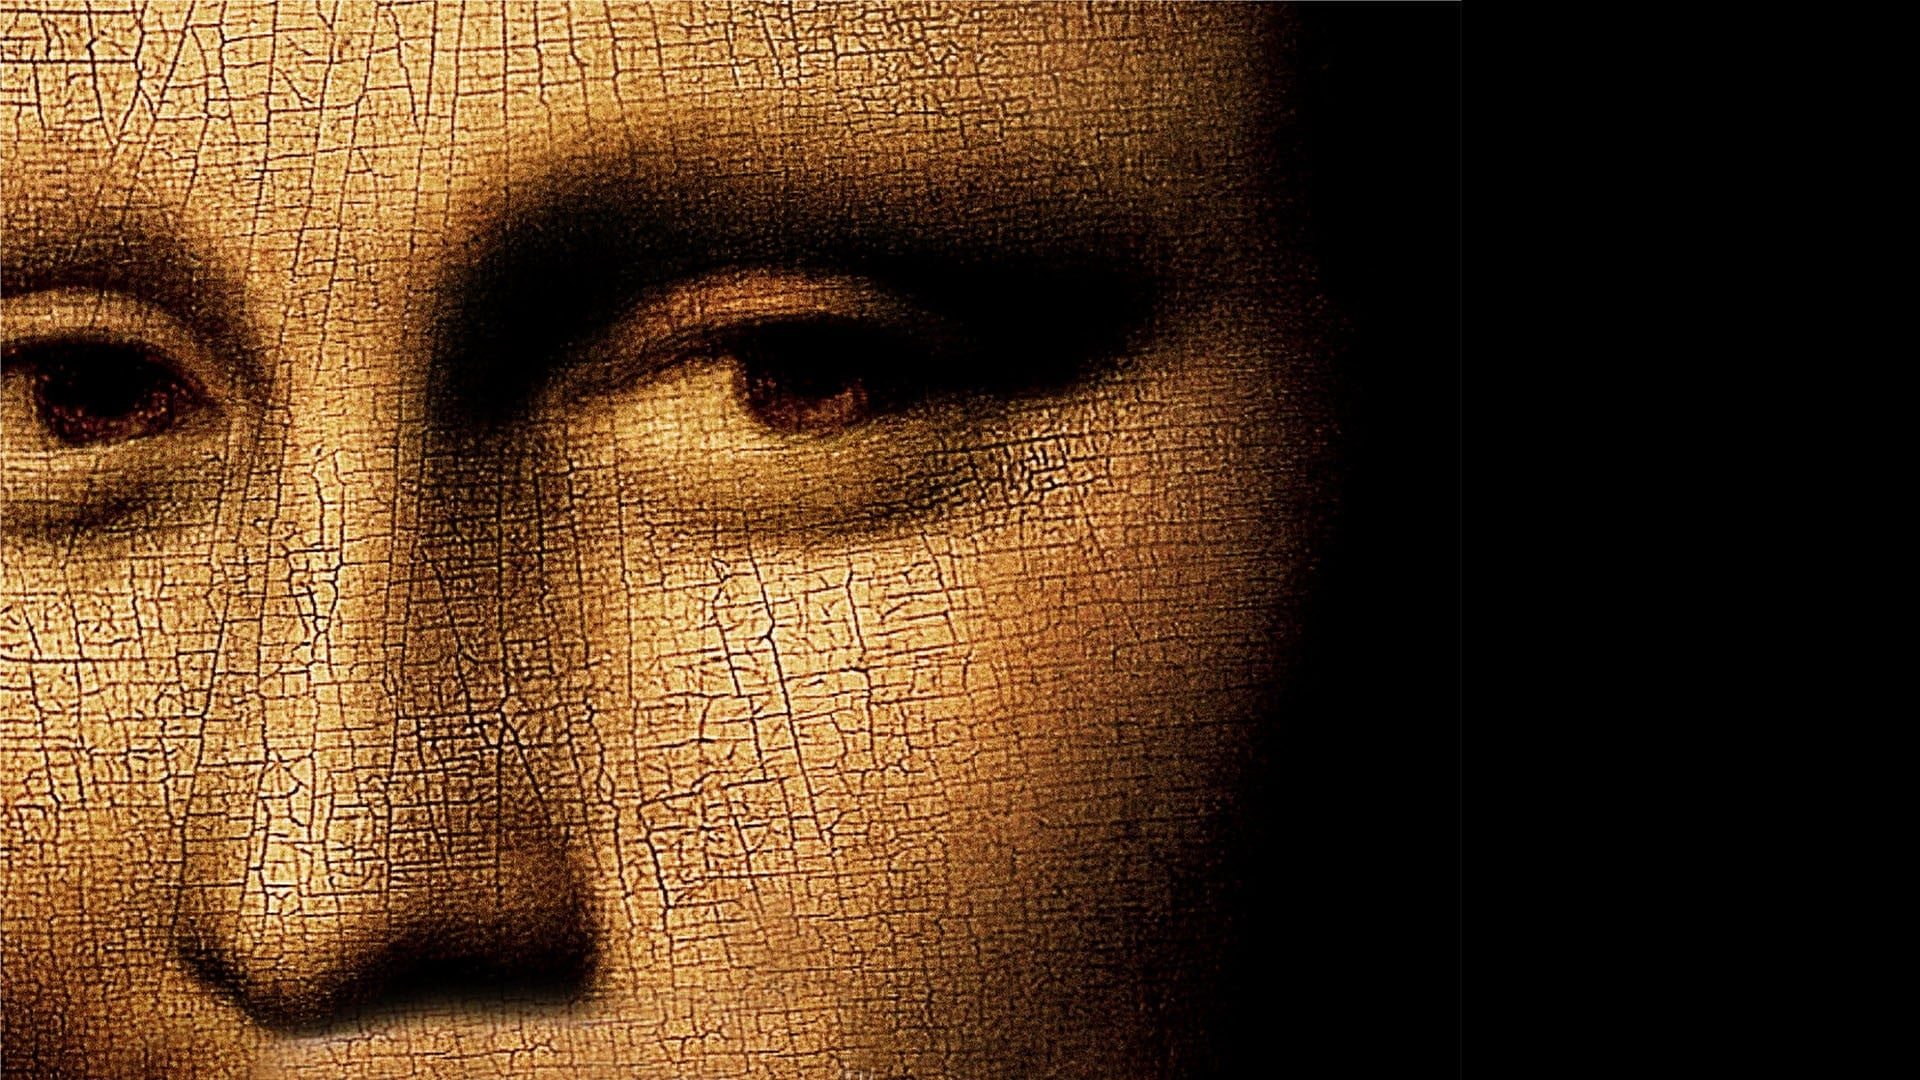 10 Captivating Books Like The Da Vinci Code